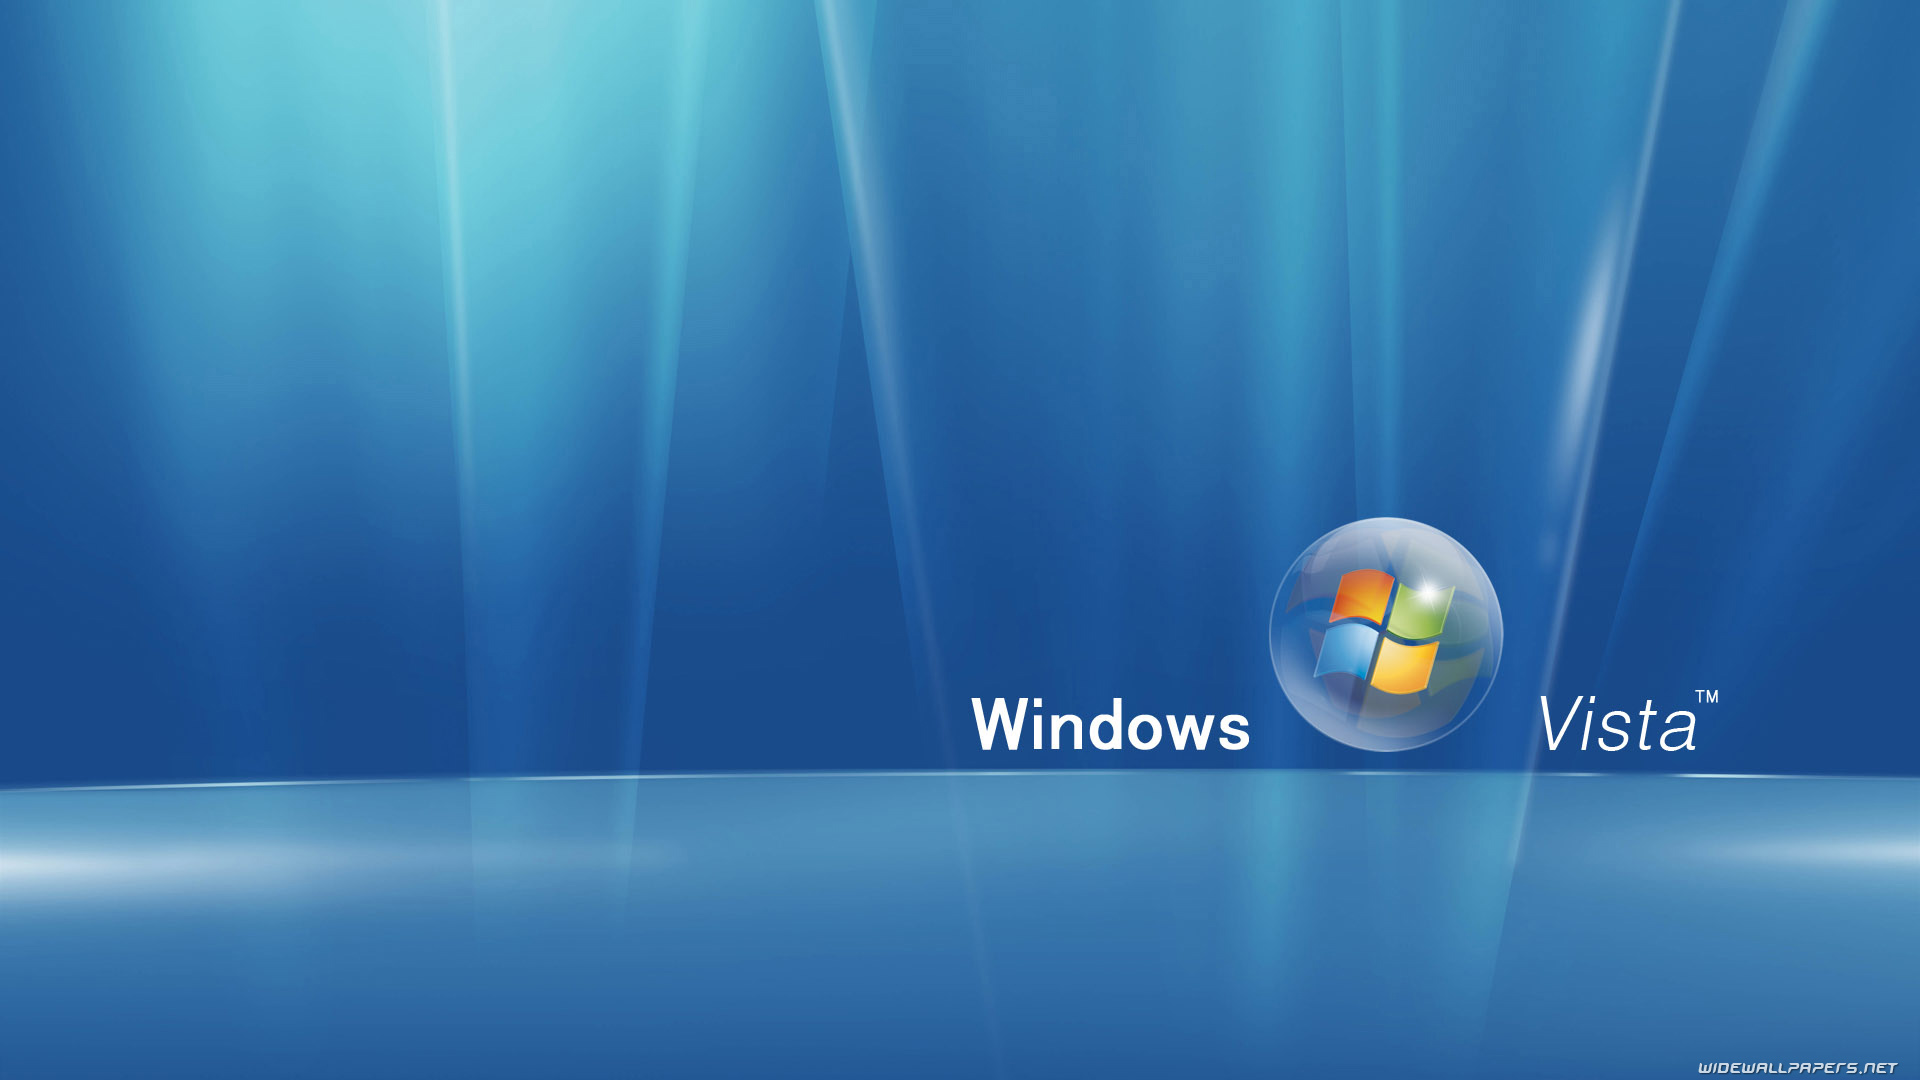 windows vista desktop wallpapers hd and wide wallpapers